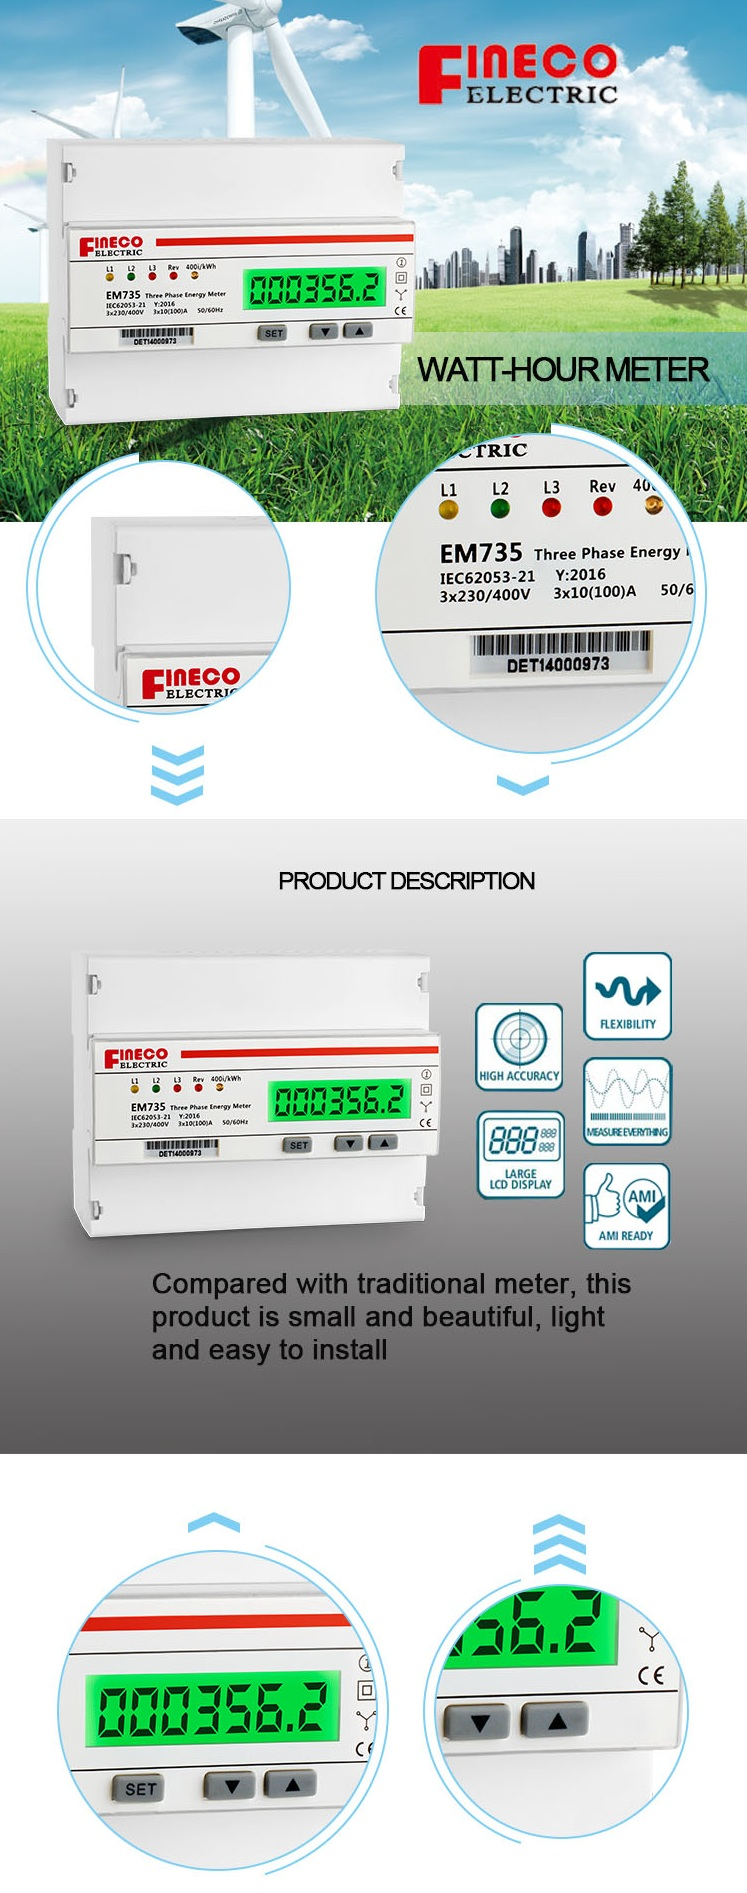 Em735 S 10100a 3 Phase 4 Wire Meter Kwh Electric Energy How To 3phase Electrical Technology Meters For Din Rail Mounted With S0 Pulse Output 1